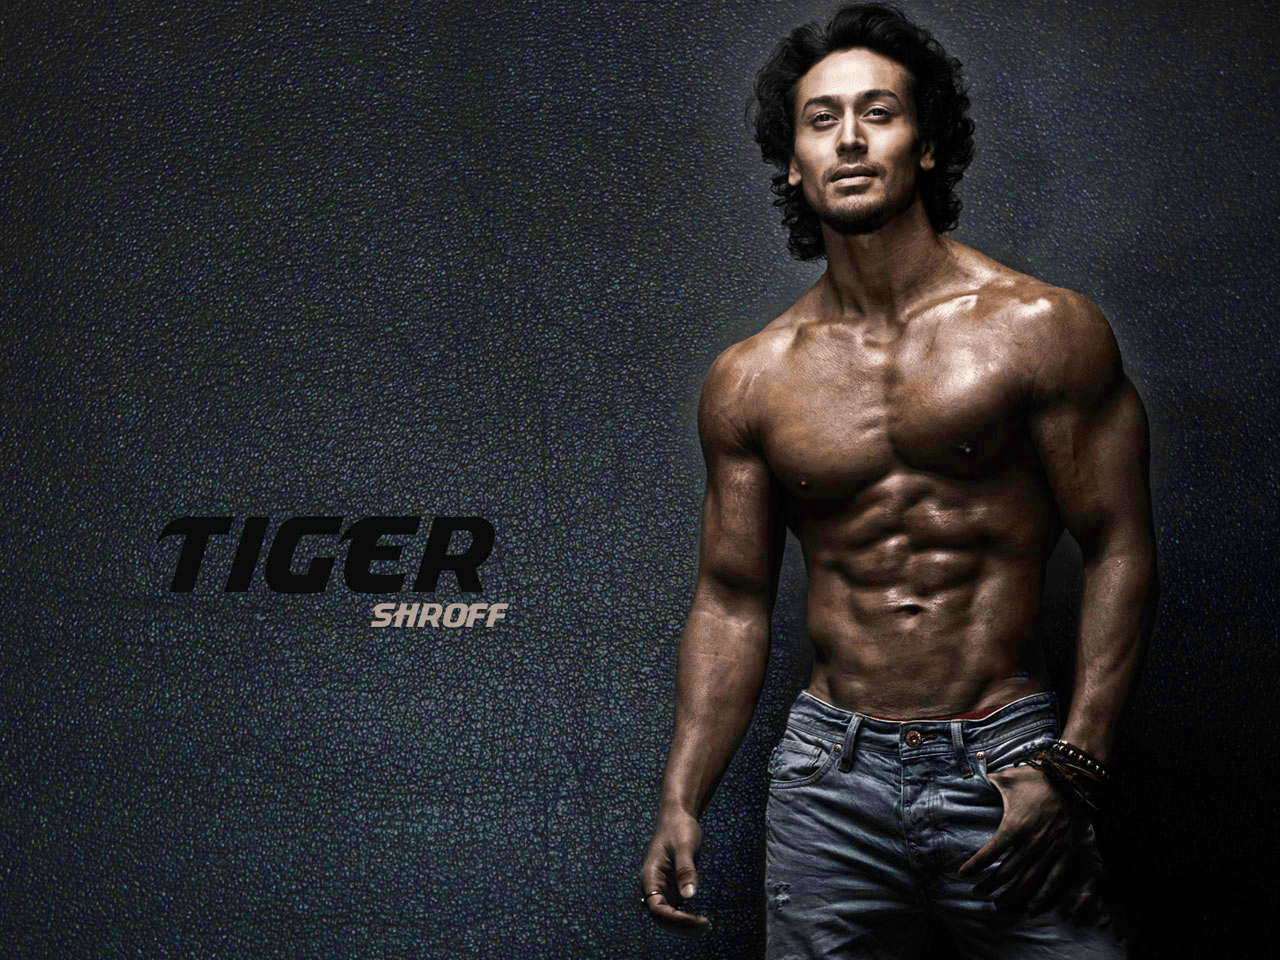 Bodybuilding wallpapers hd 2016 wallpaper cave - Baaghi 2 love wallpaper ...